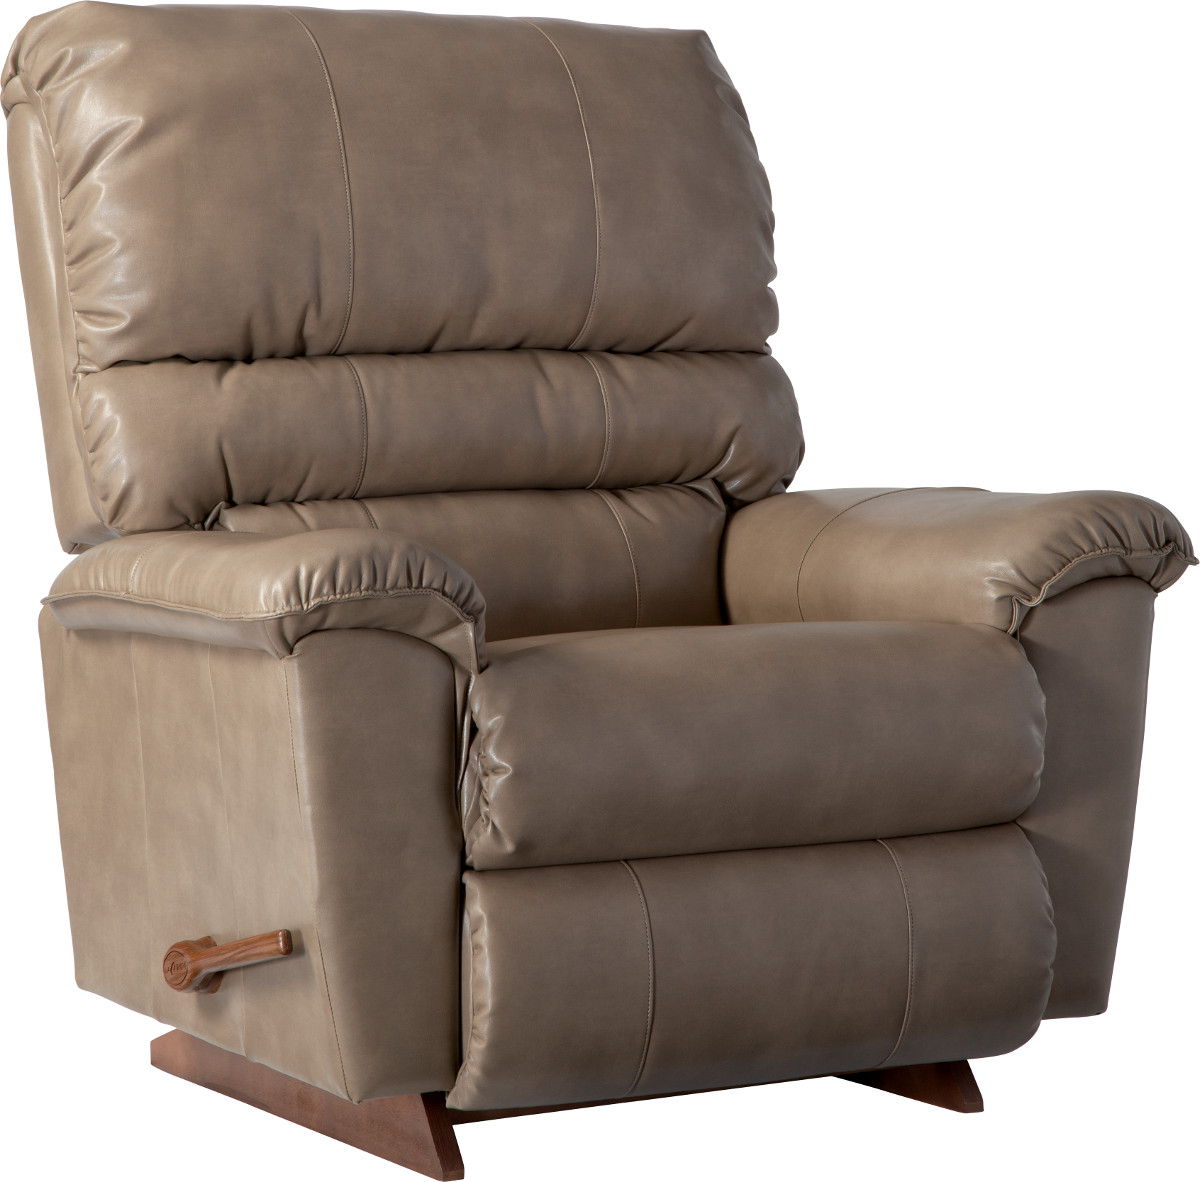 Vince Reclina Rocker 174 Recliner Cedar Hill Furniture